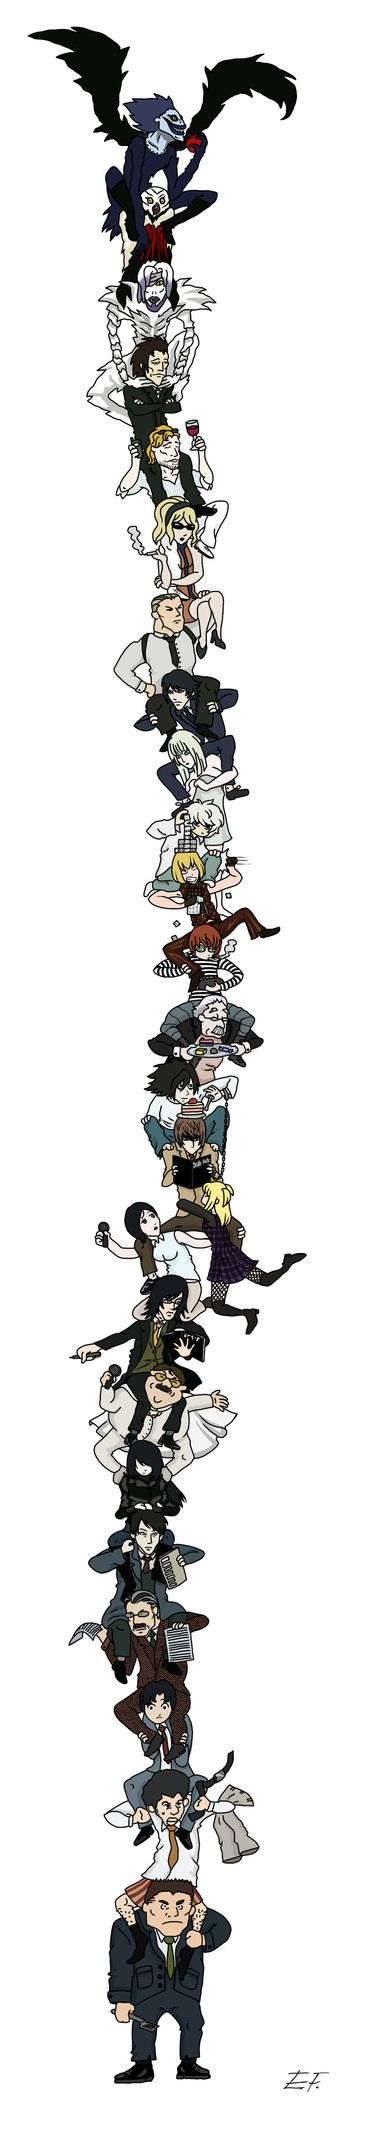 Death Note on Shoulders - Colored version by erinxf